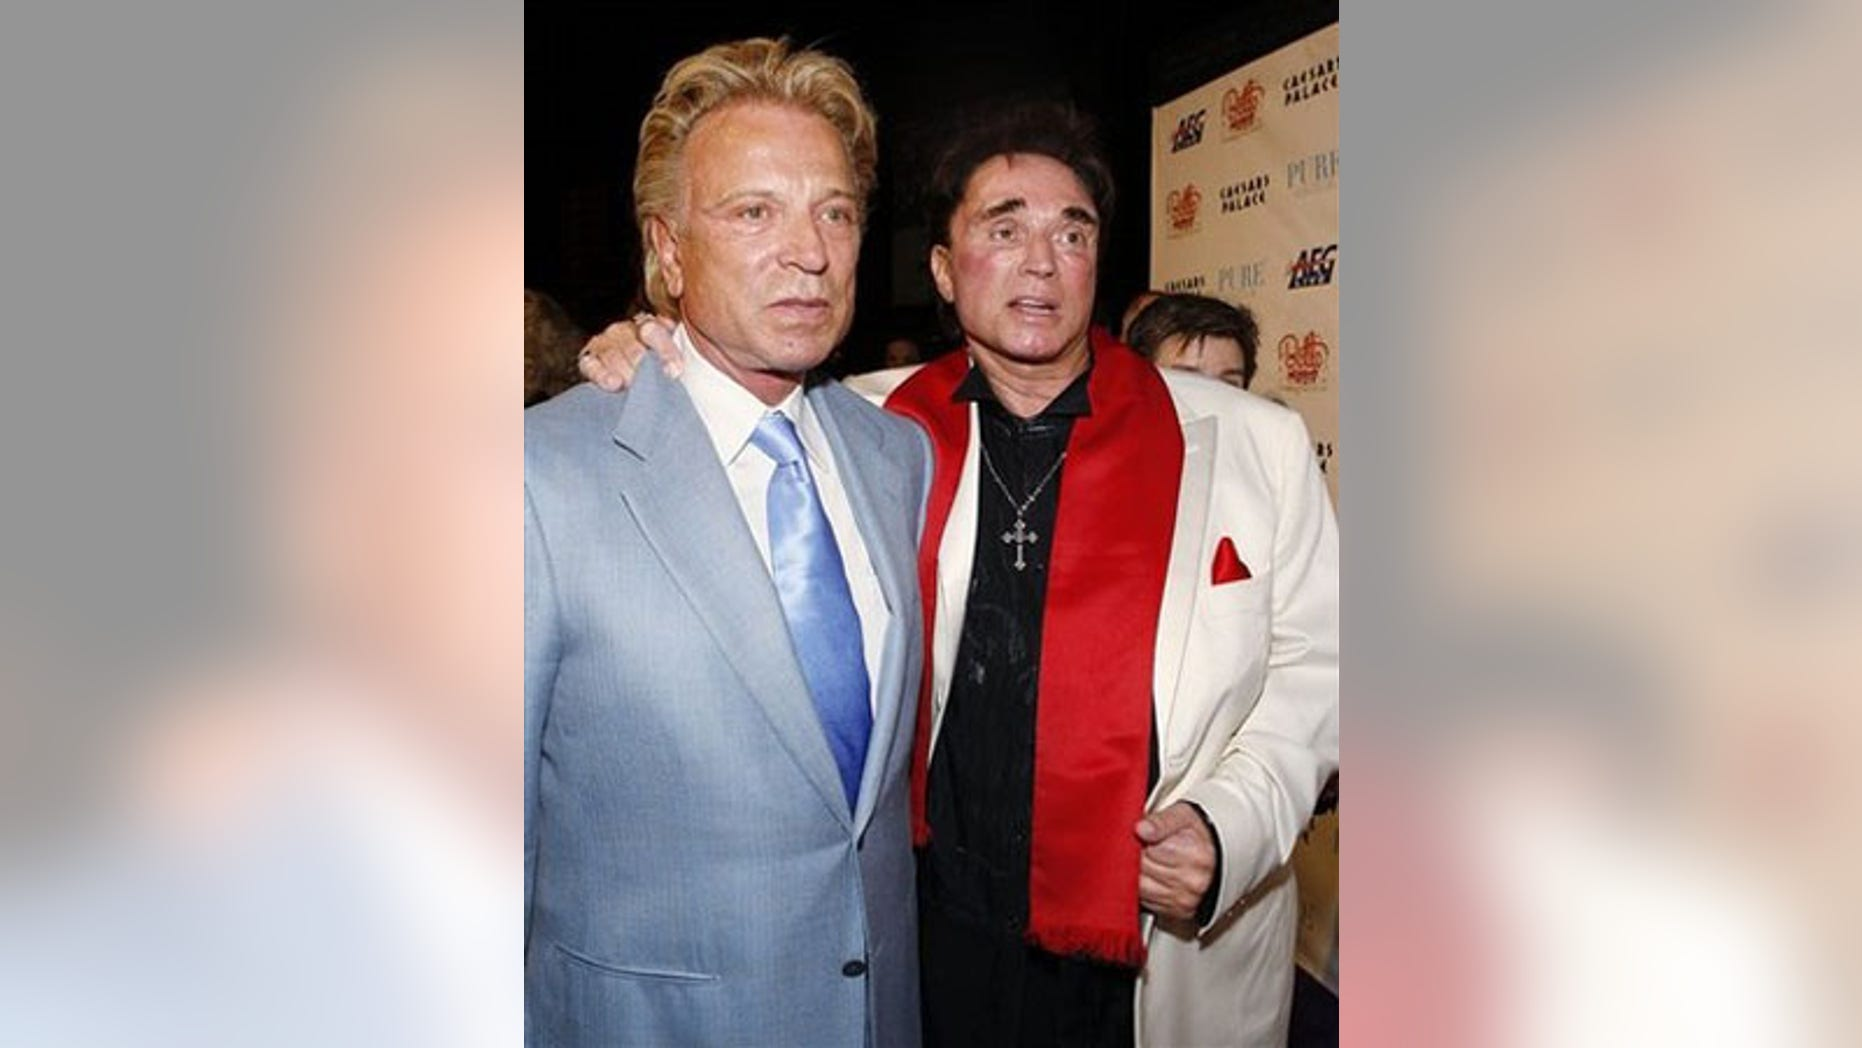 """** FILE ** In this Feb. 20, 2008 file photo, Siegfried Fischbacher, left, and Roy Horn arrive at a party following the premiere performance of Bette Midler's """"The Showgirl Must Go On"""" at Caesar's Palace hotel and casino in Las Vegas. (AP Photo/Isaac Brekken, file)"""